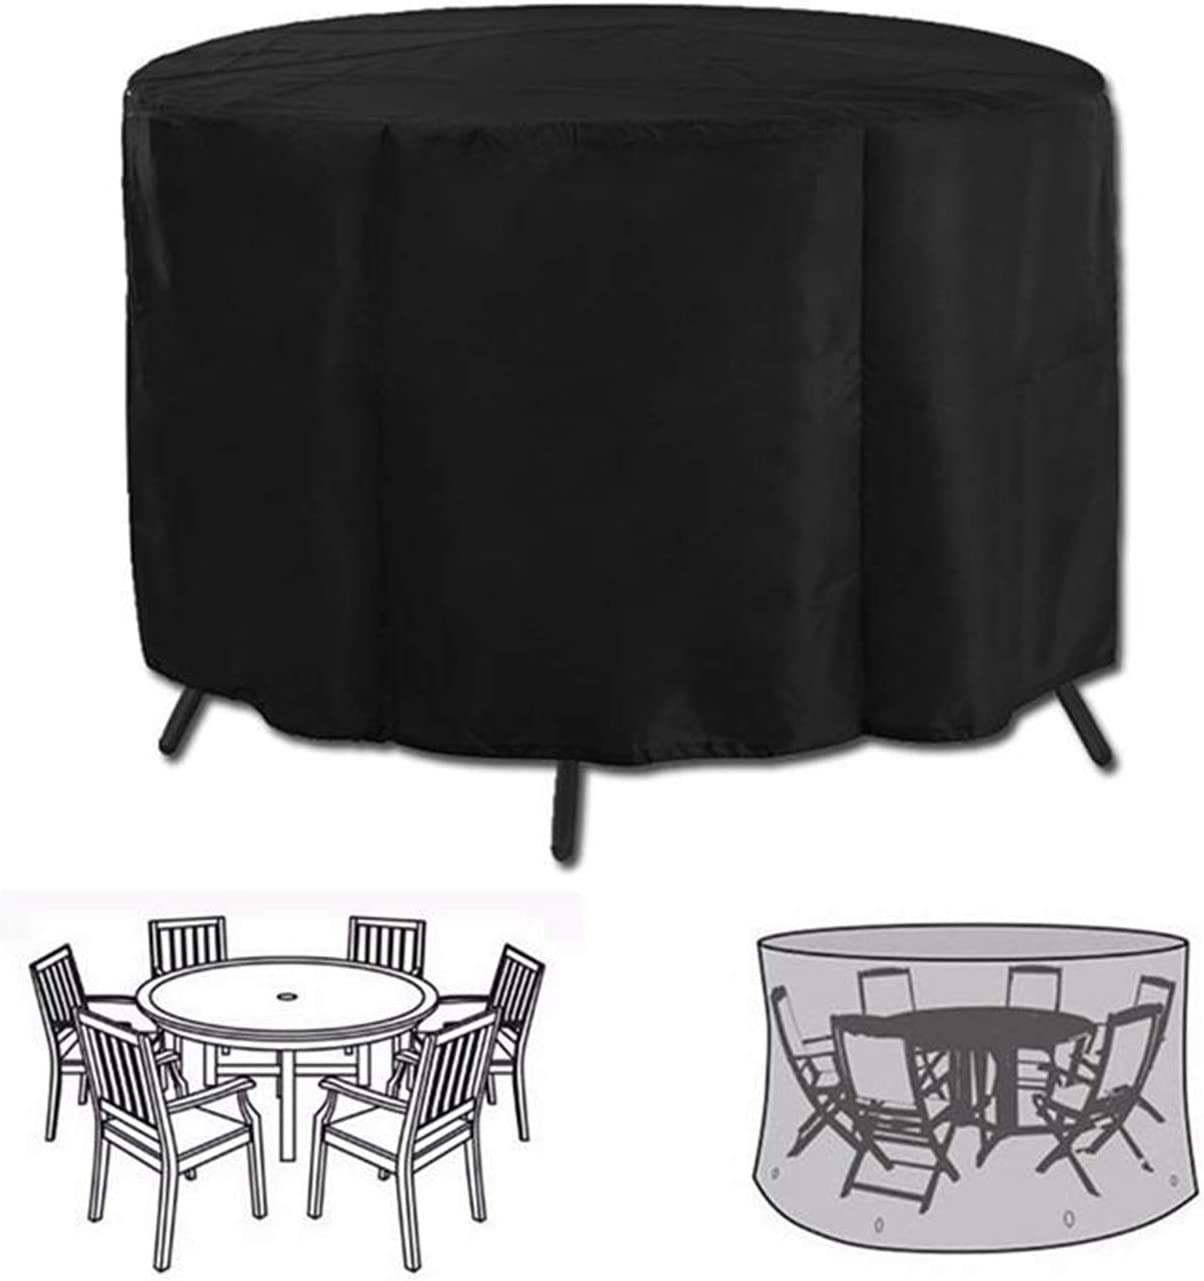 Amazon.com: Iptienda Outdoor Patio Furniture Covers, Waterproof UV Resistant Anti-Fading Round Patio Dining Table And Chairs Set Cover, Garden Patio Round Cube Outdoor Rattan Table, Sofa Cover Fits For 6 Seater: Home